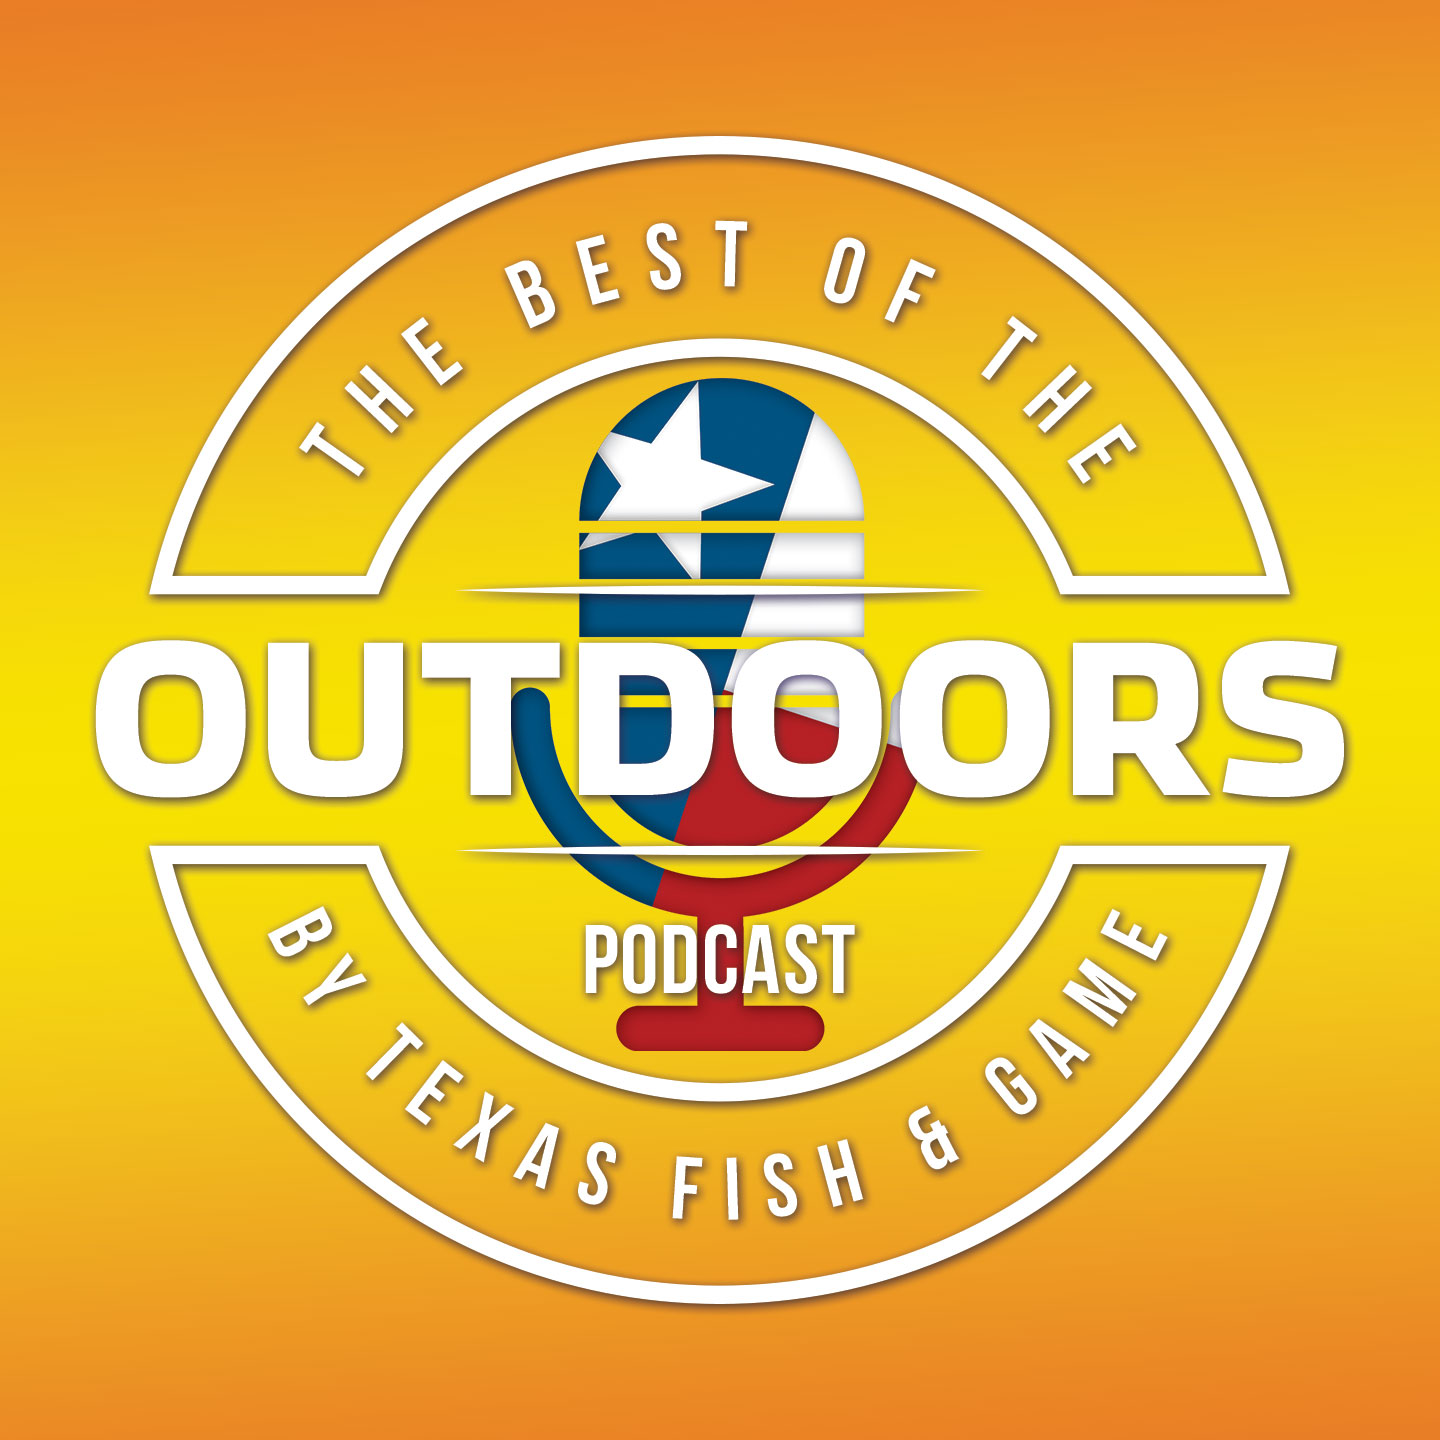 Summer Freshwater and Saltwater Bowfishing and Other Outdoor Adventures with Guest Marty McIntyre